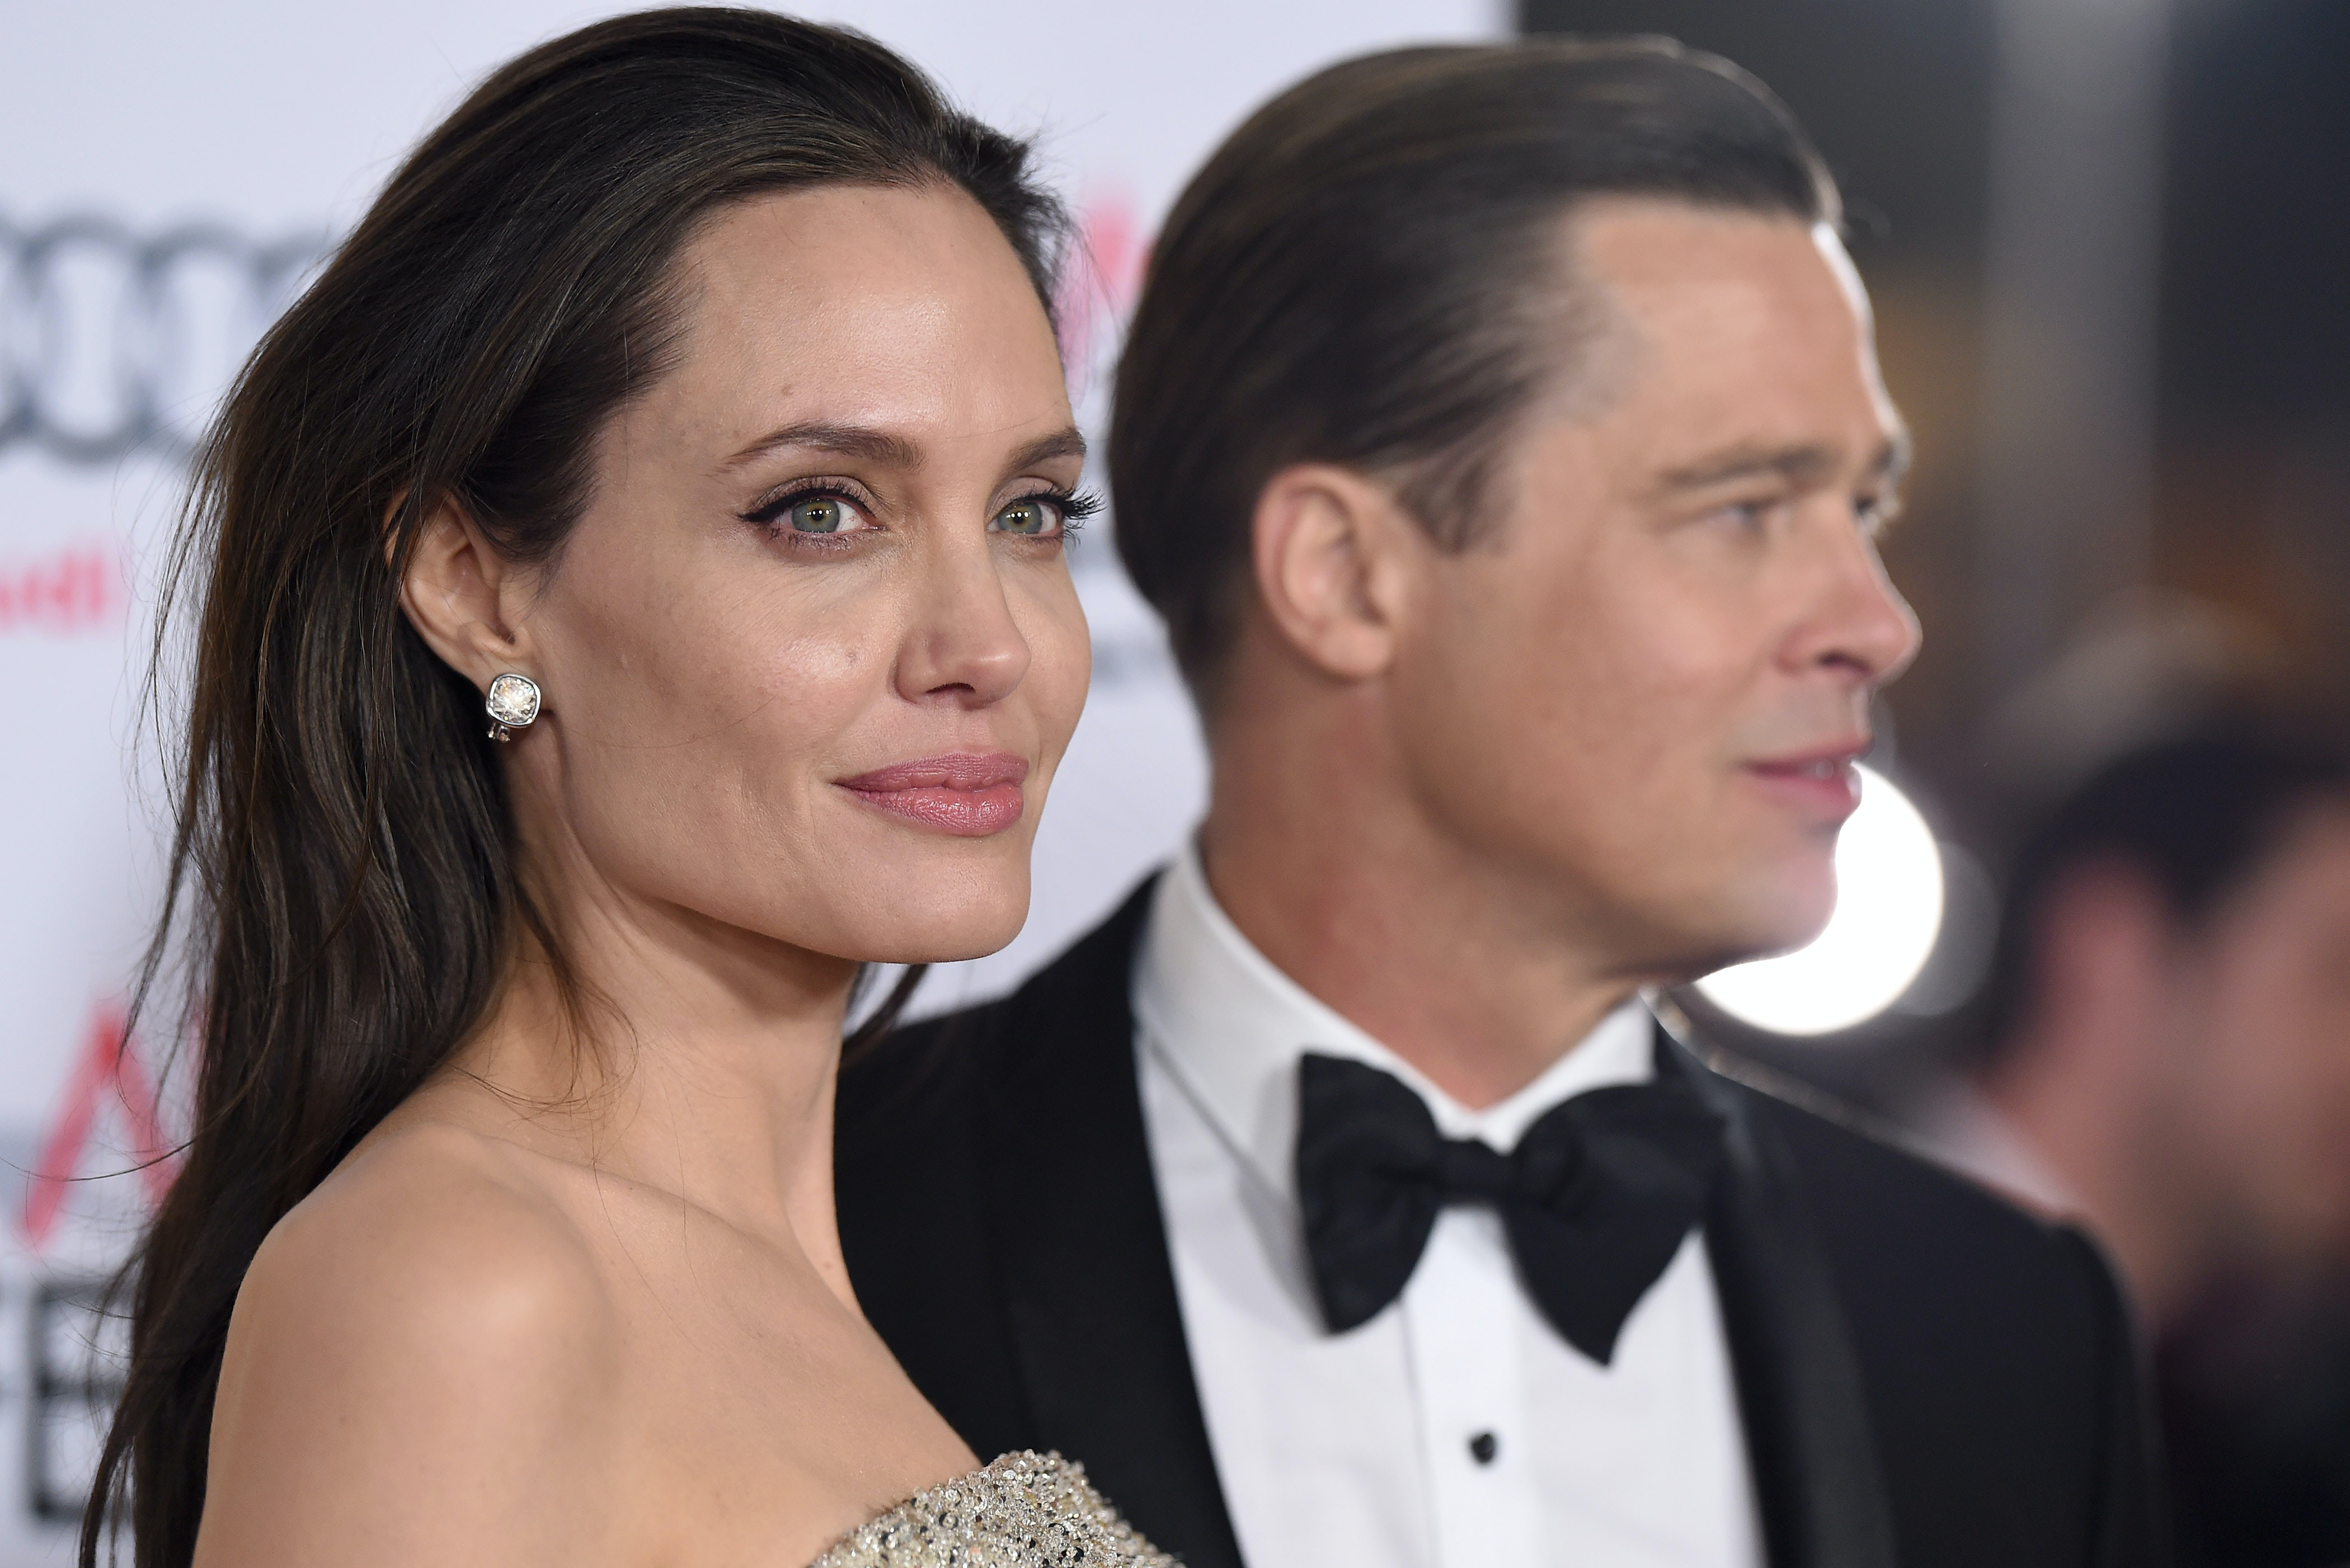 Angeline Jolie And Brad Pitt Wedding Photos That Will Hit You Square In The Divorce Feels